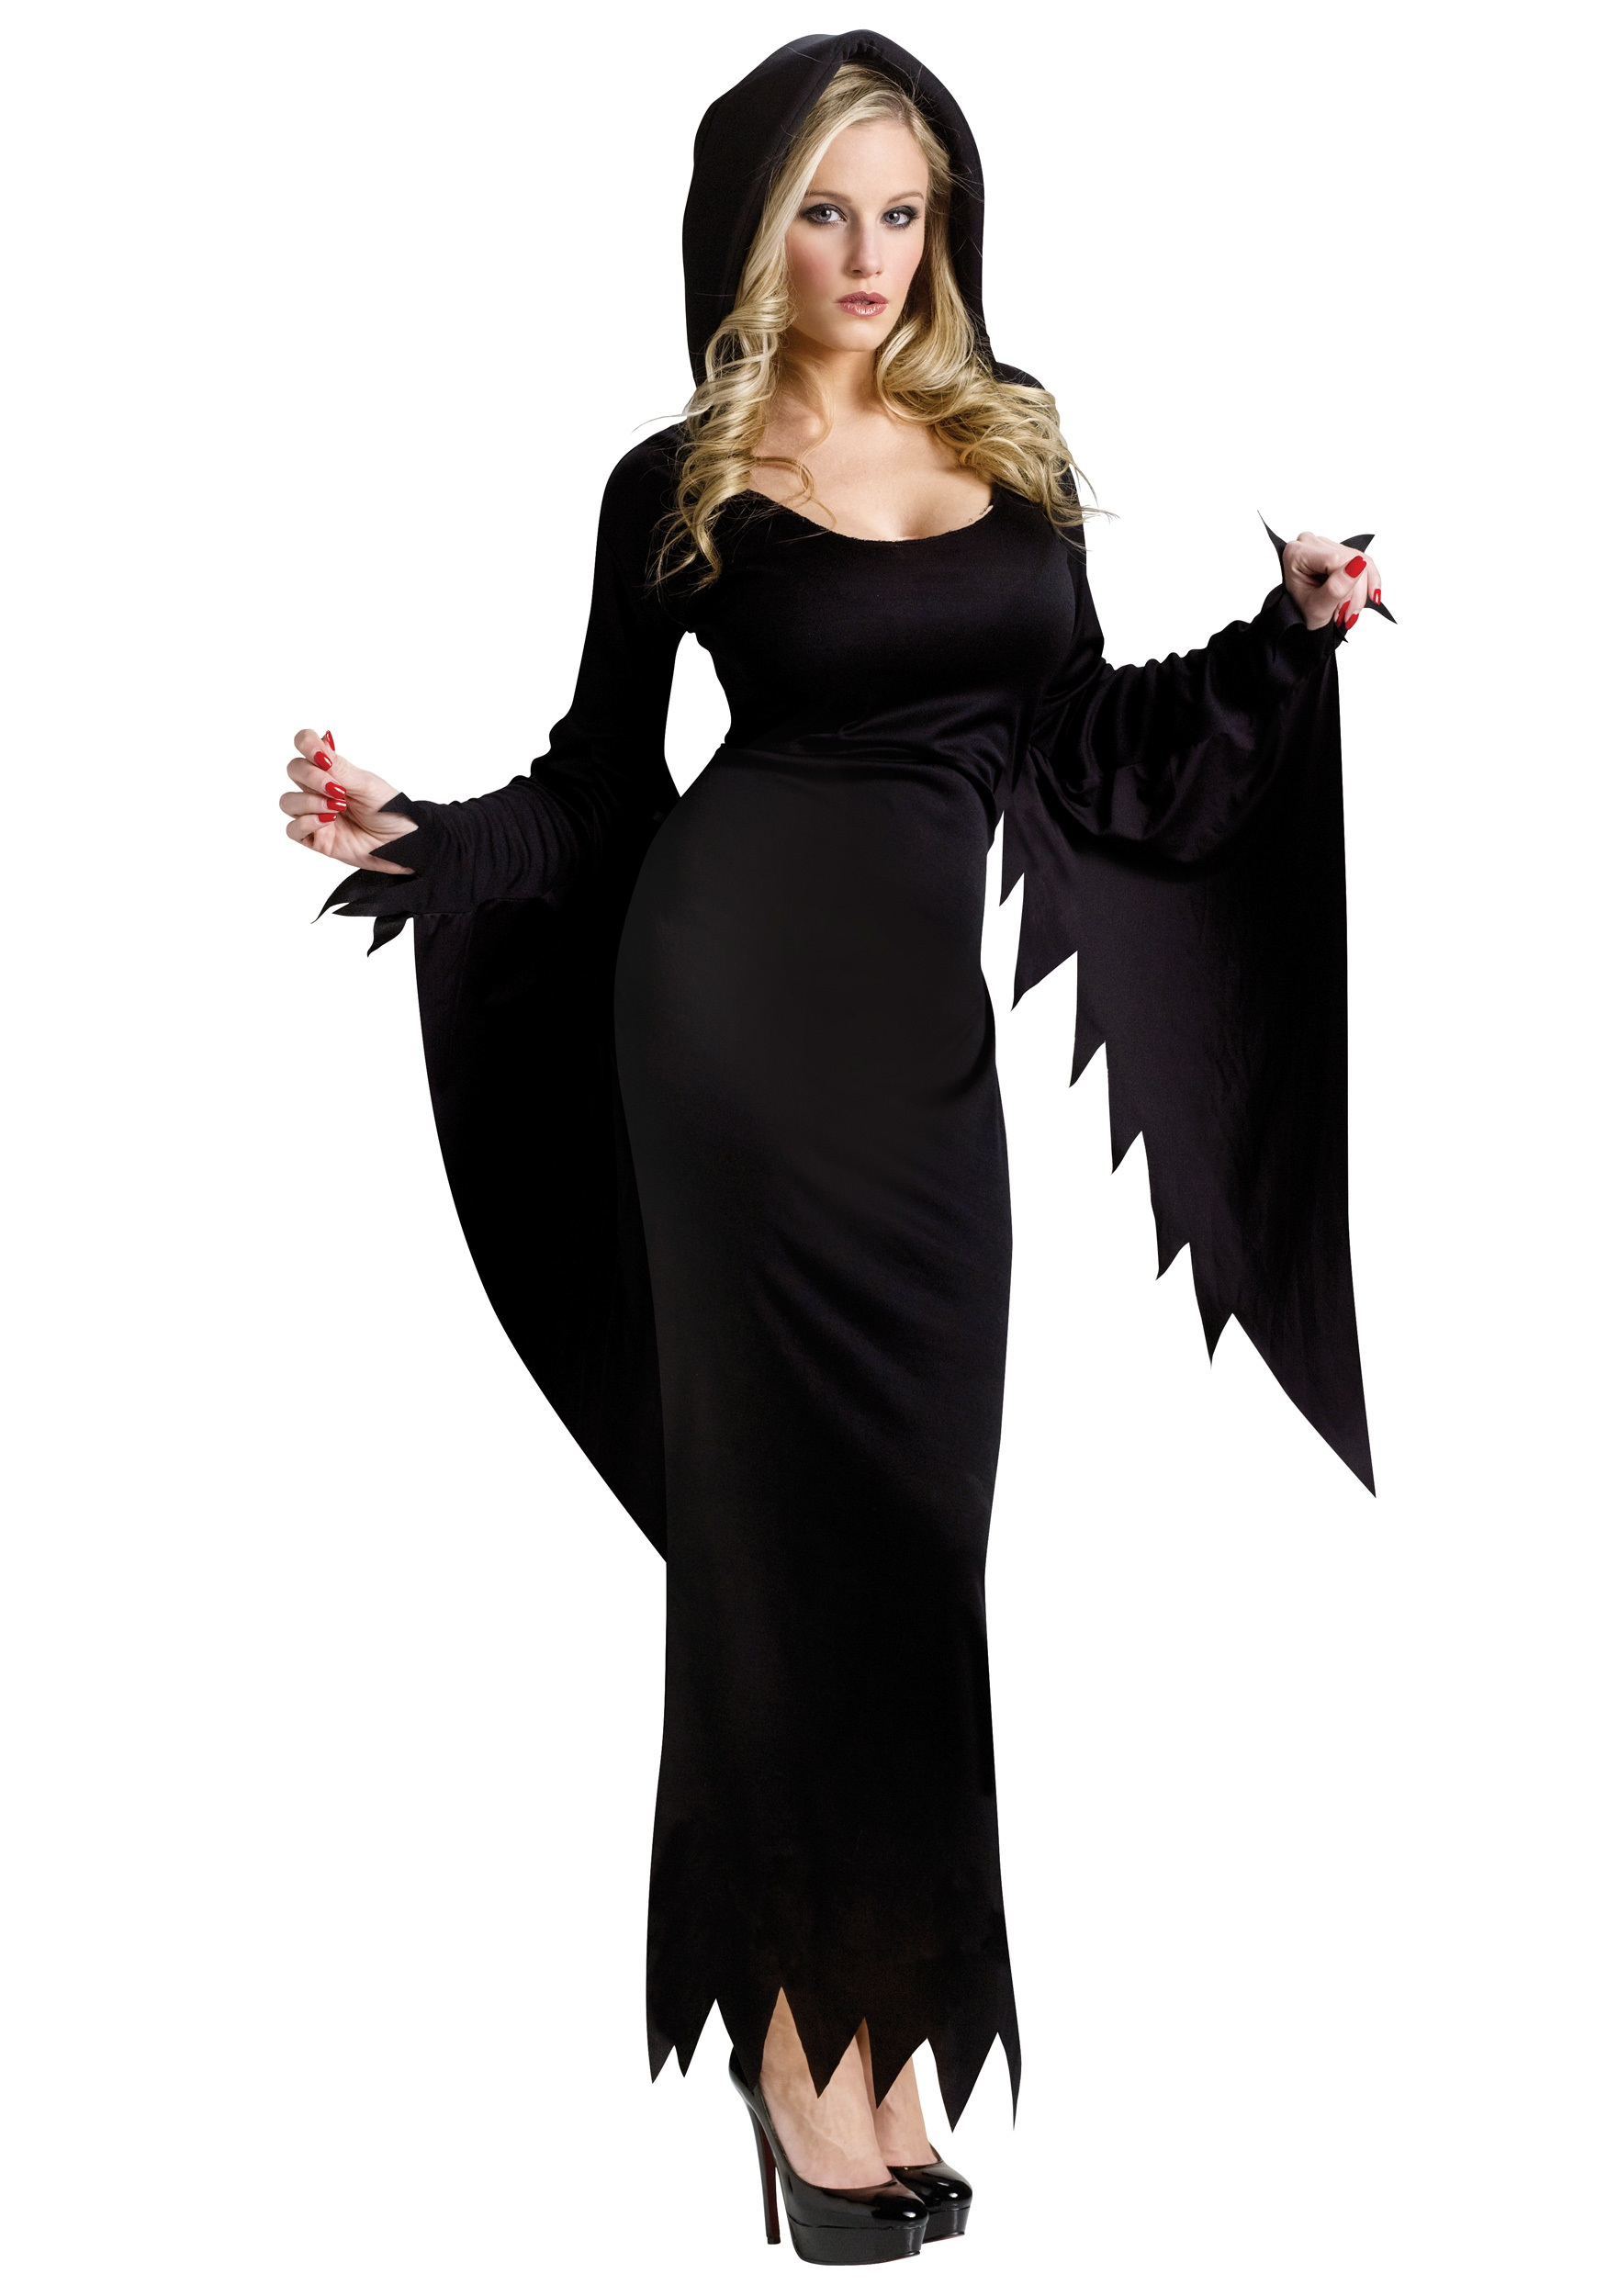 Black Hooded Womens Gown  sc 1 st  Halloween Costume Ideas & Black Hooded Womens Gown - Witch Vampire Costume Ideas